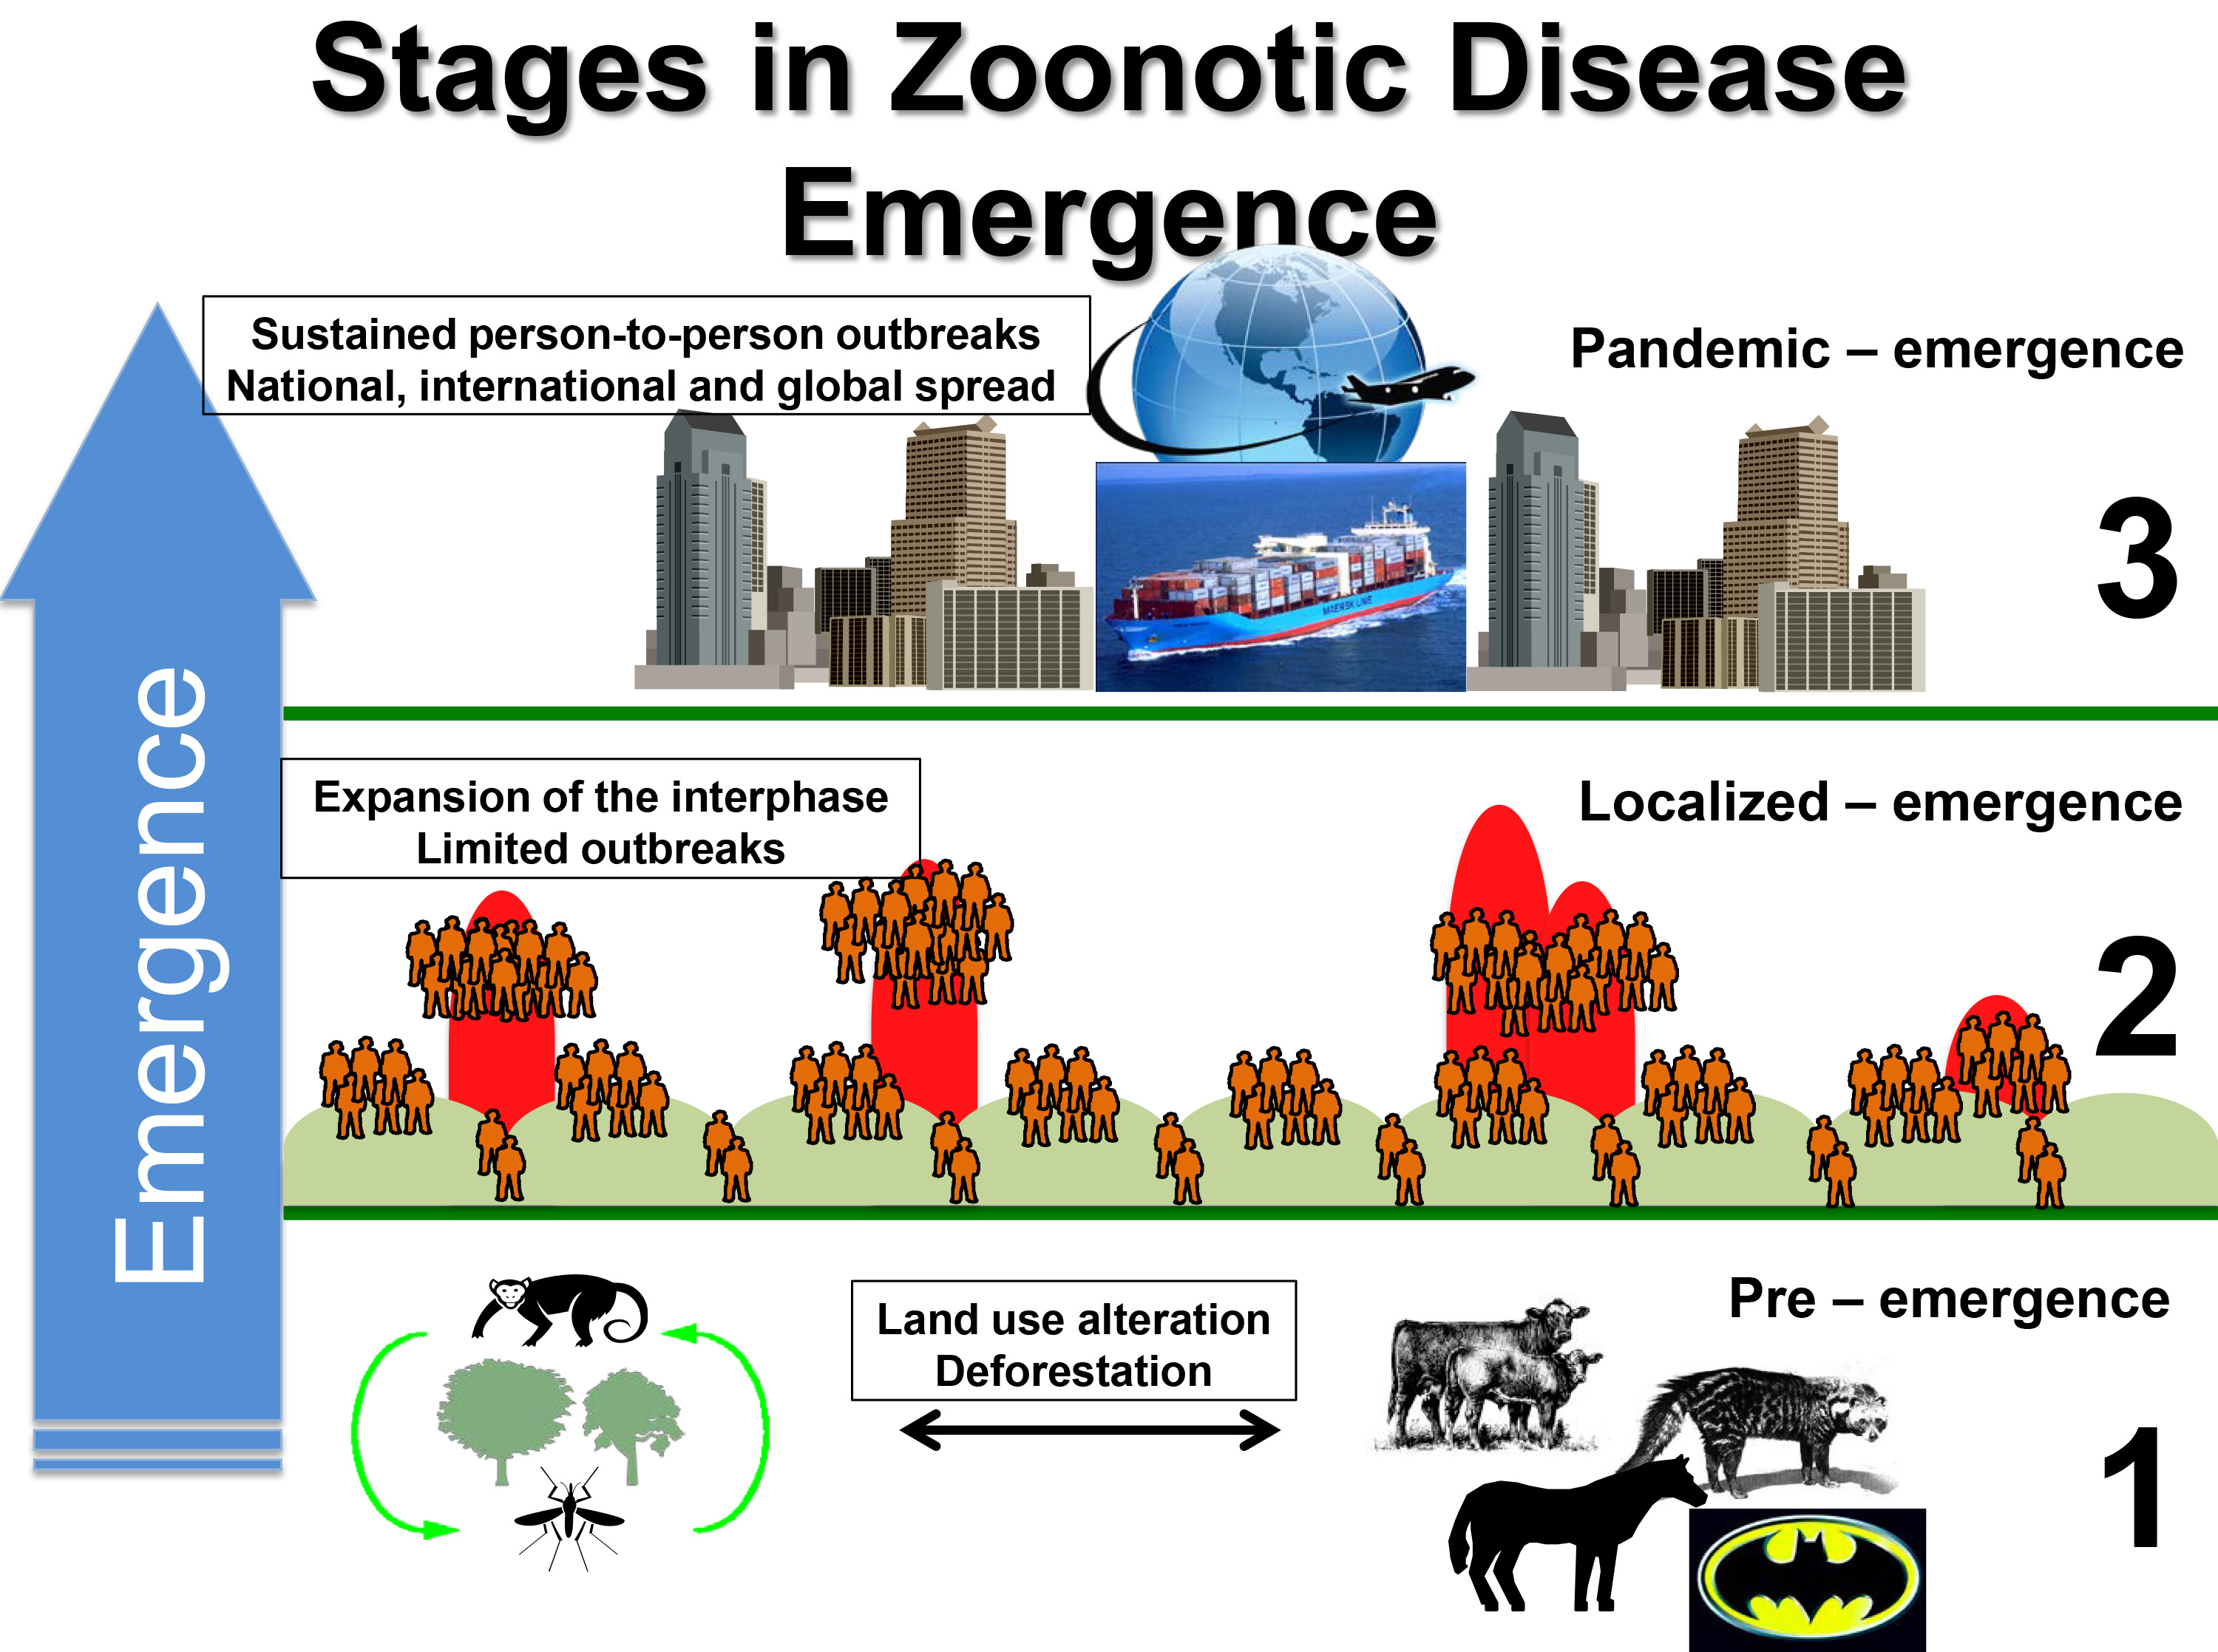 Stages of Zoonotic Disease Emergence_Nikos_Lab